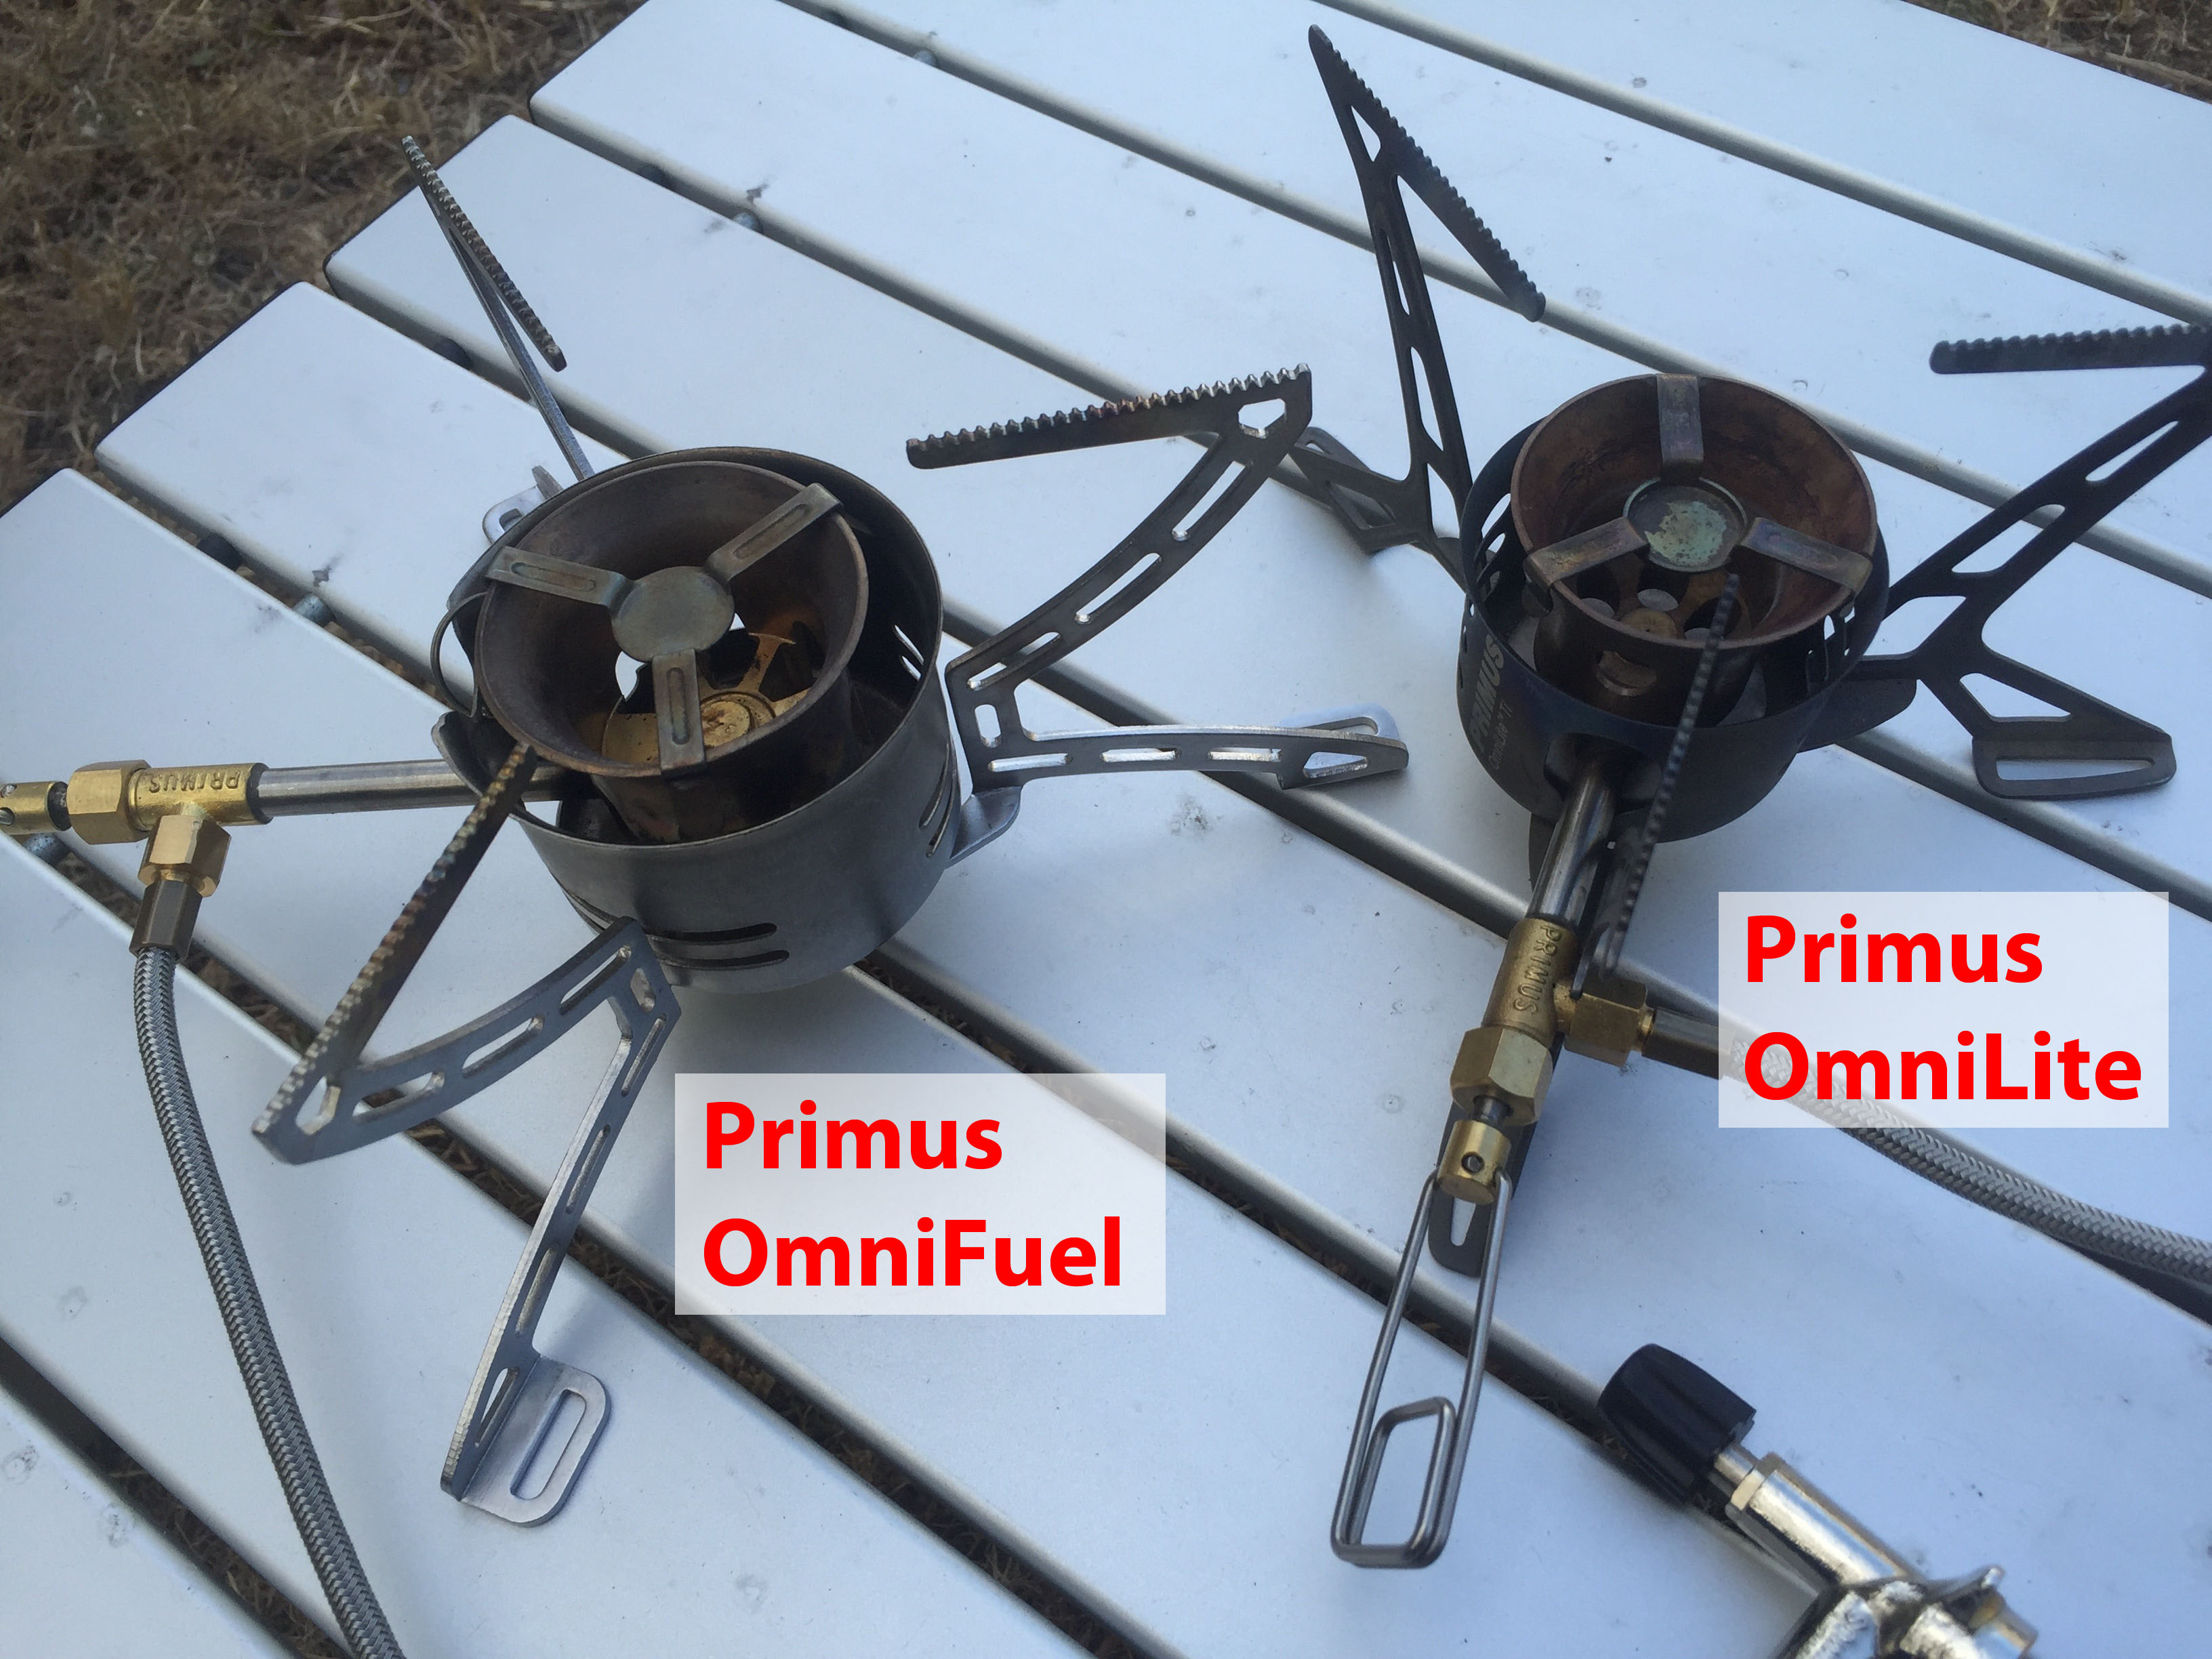 The Omnilite Is Essentially More Recent Titanium Version Of Omnifuel With Some Great Enhancements A Major Focus On Being Lighter By Using